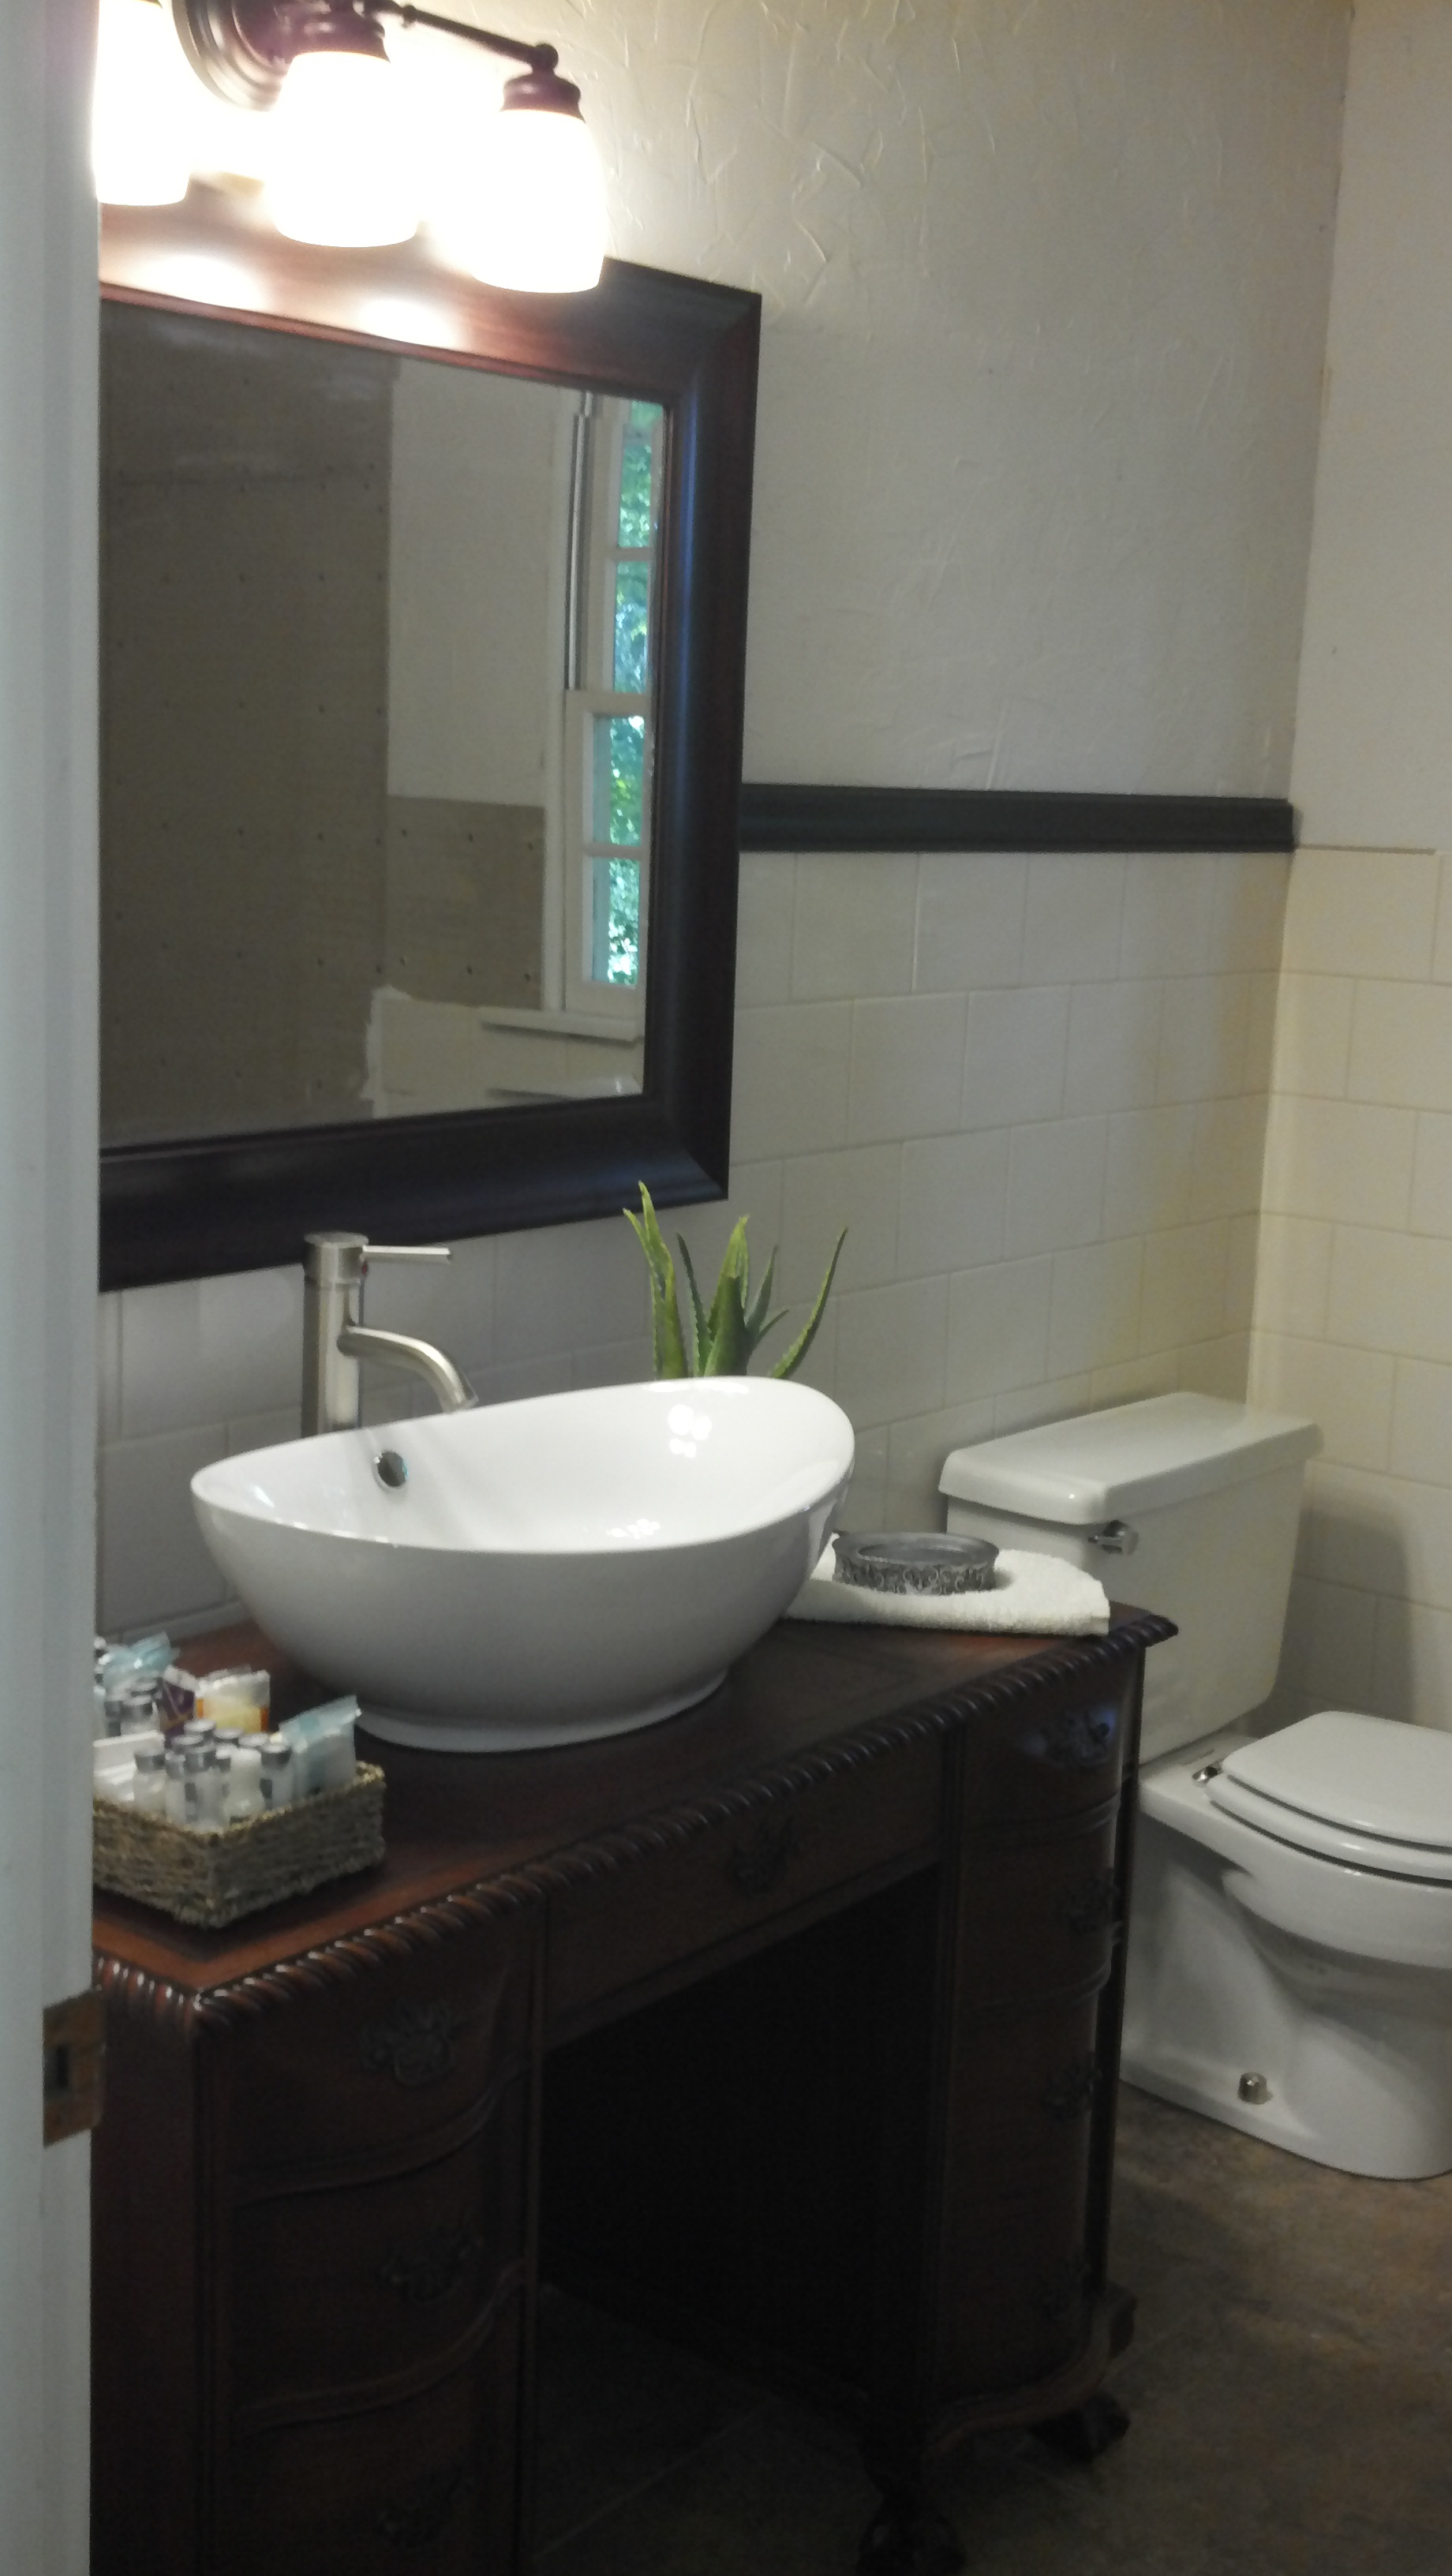 Picture of: Small Bathroom Vanity With Vessel Sink